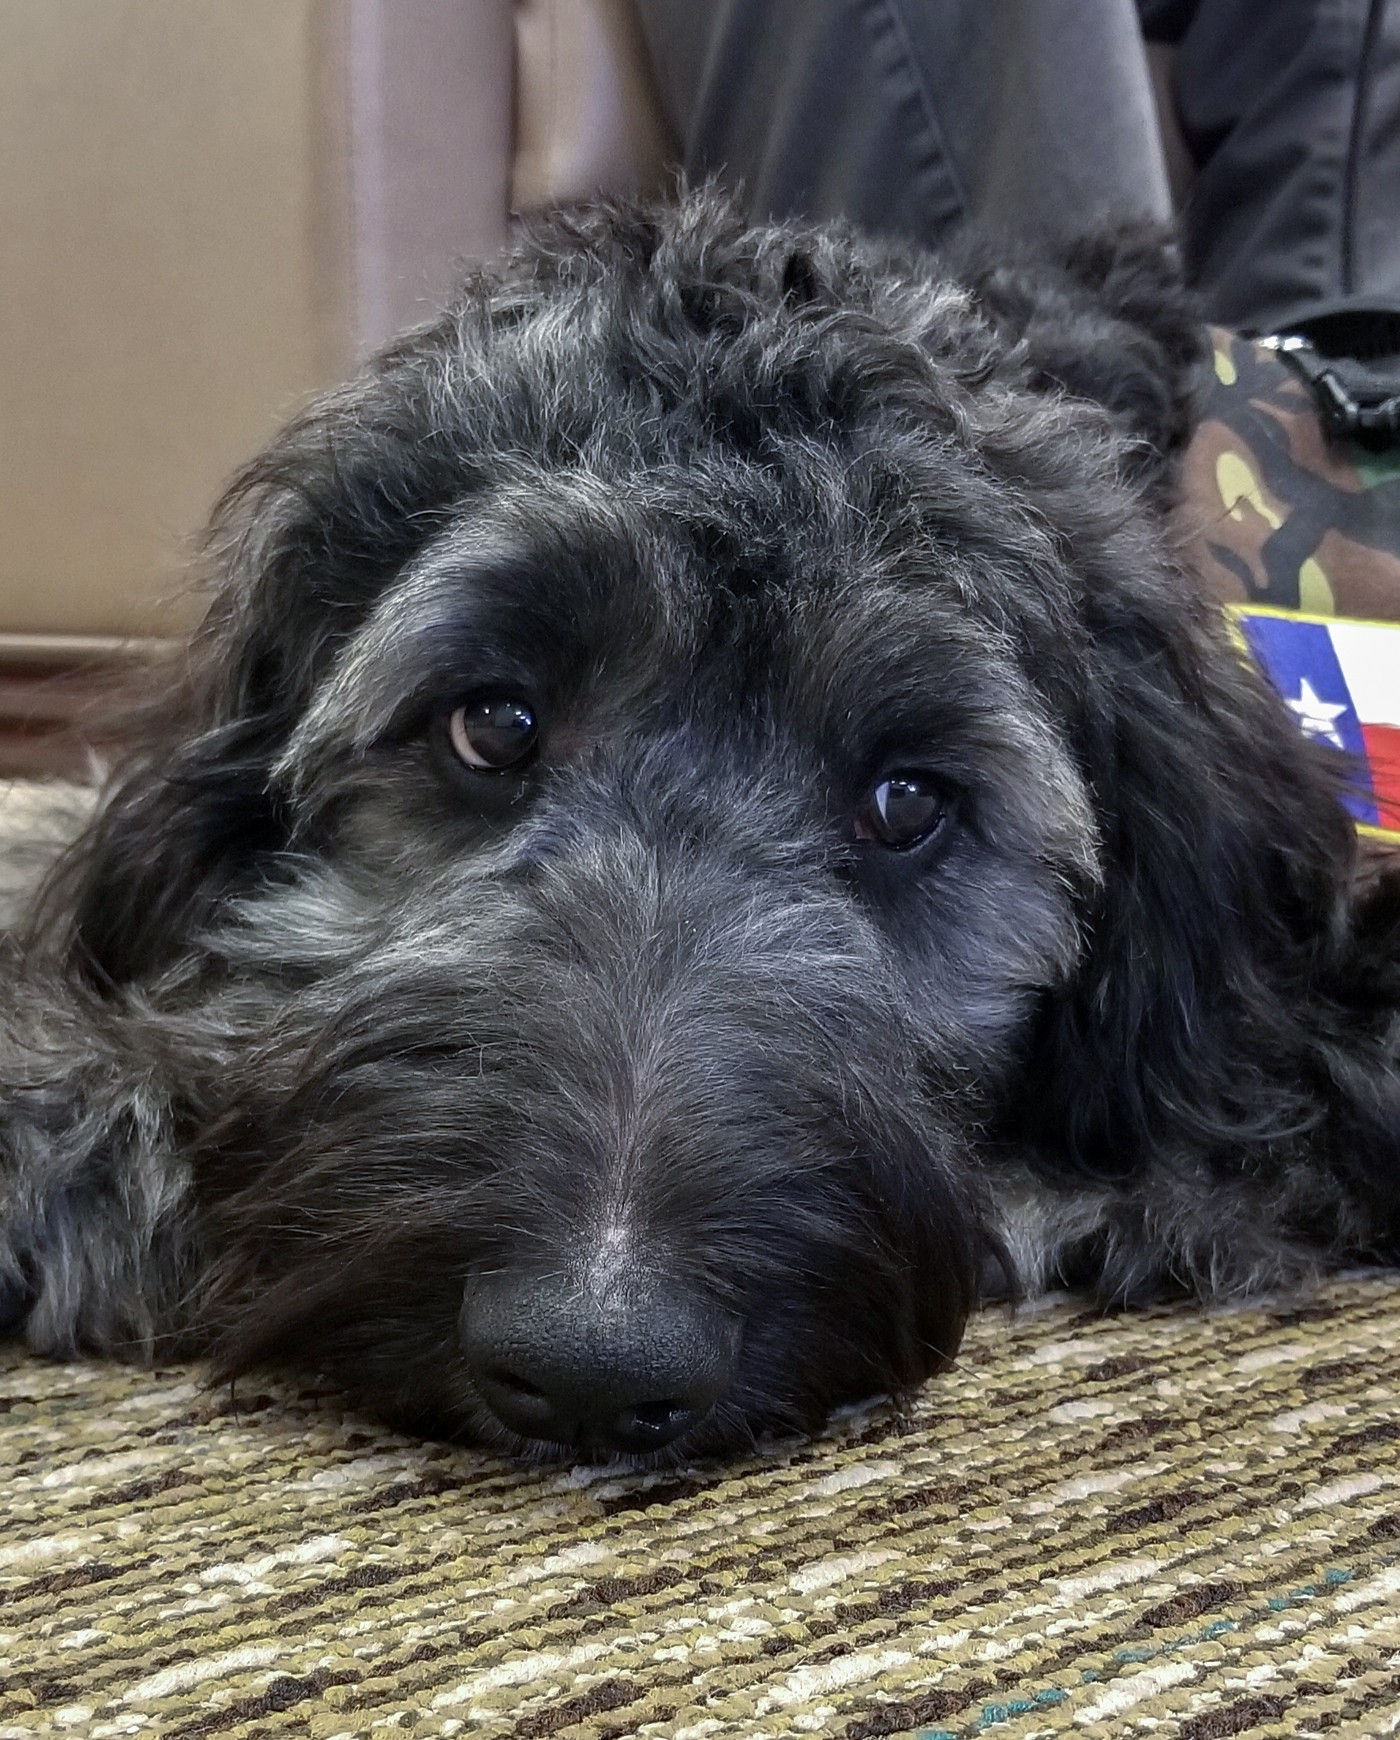 Sully the Therapy Dog Coming Soon to the Texas State Veterans Home